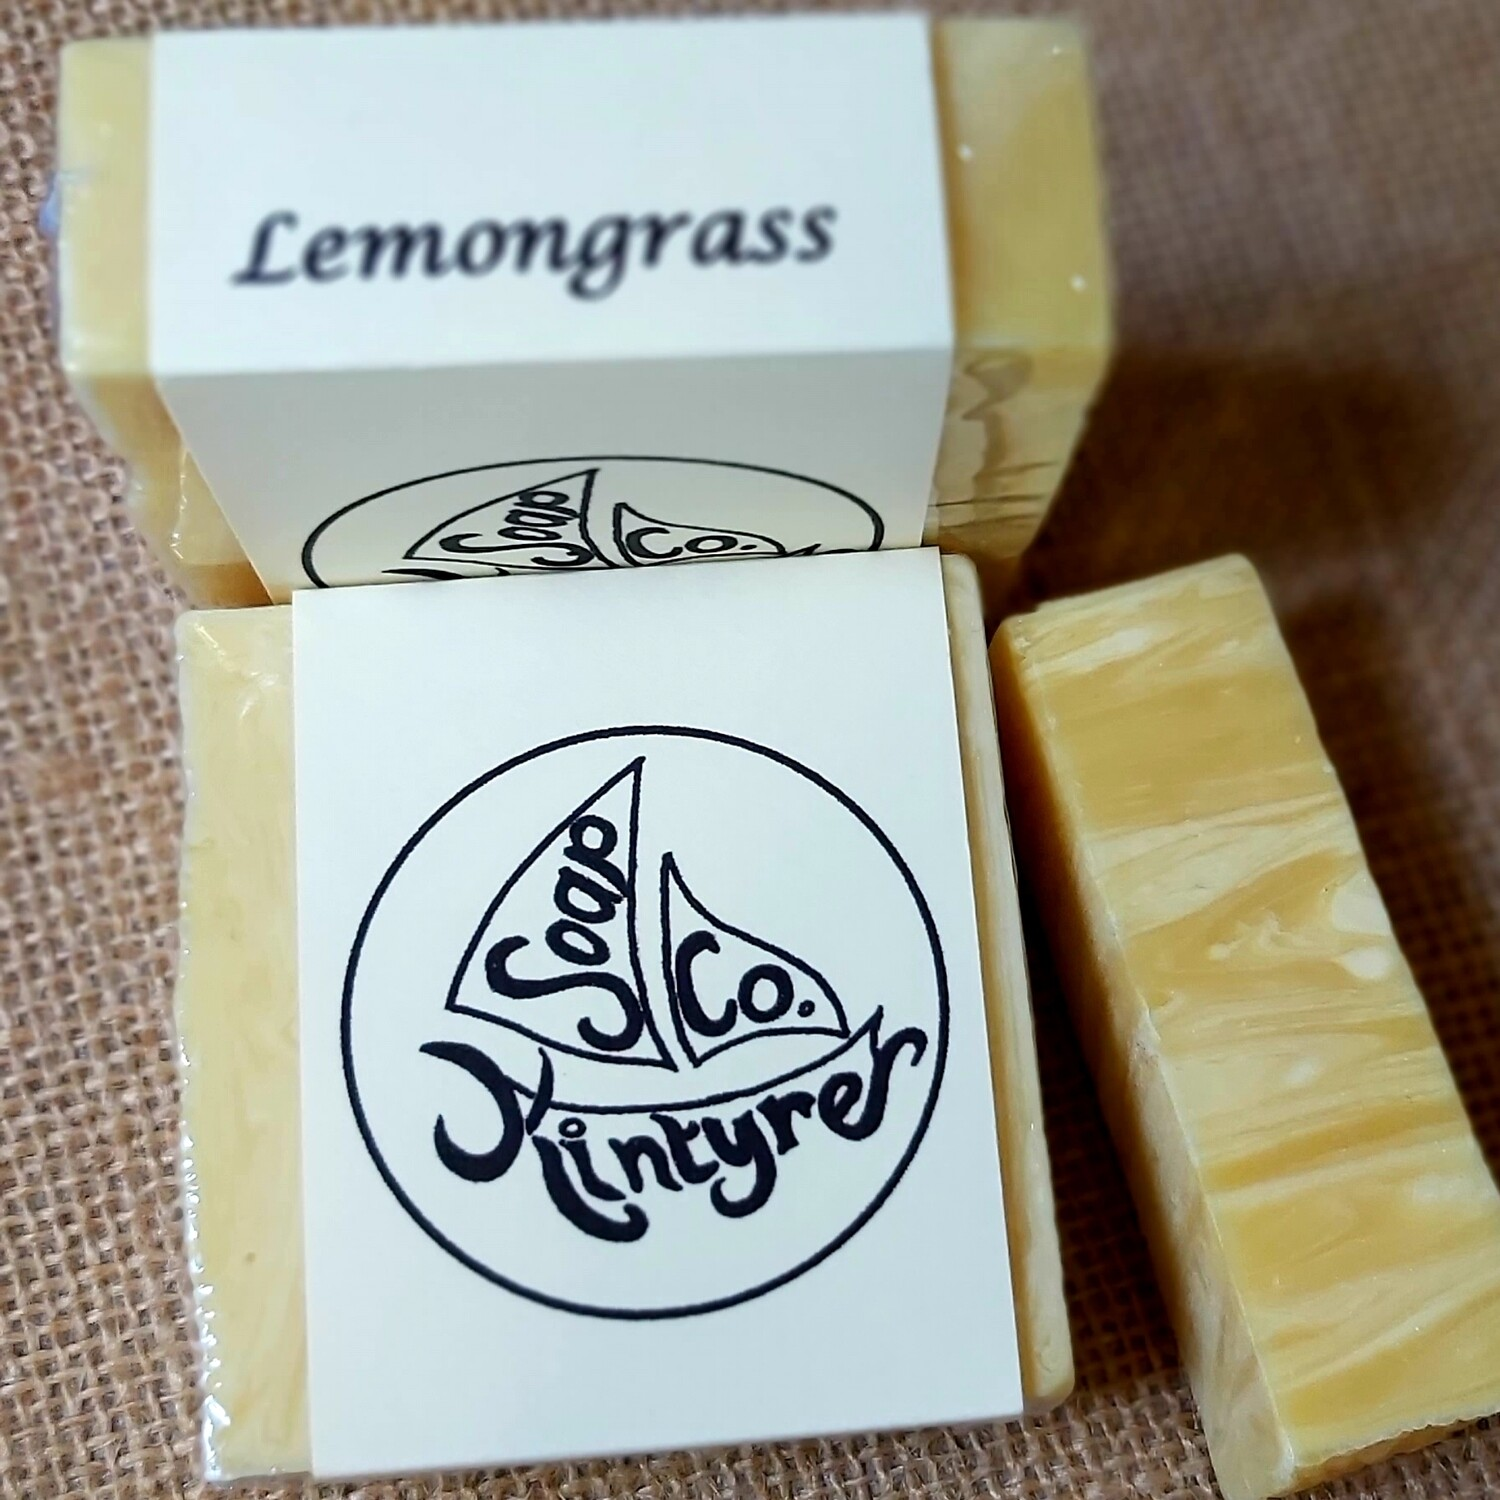 'Lemongrass' cold processed soap